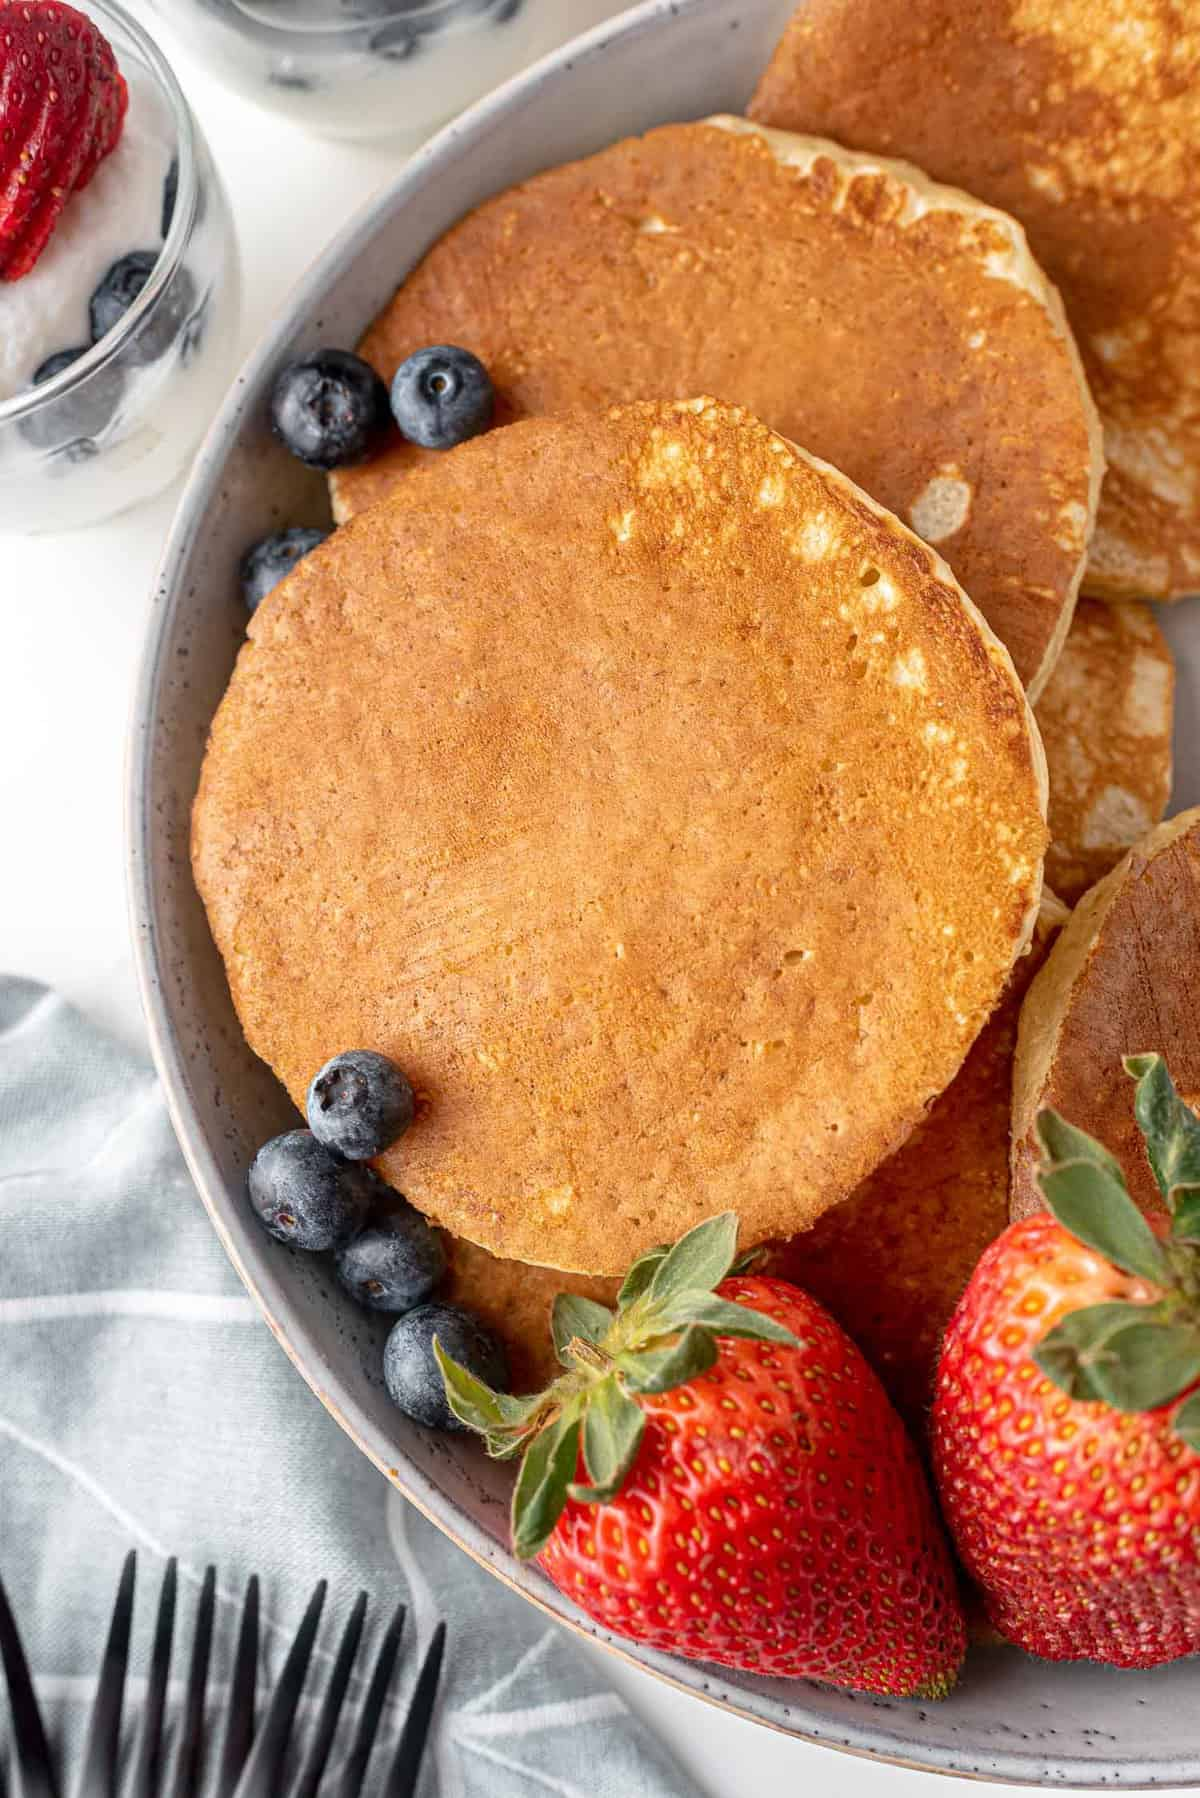 Overhead view of pancakes on a platter with fresh fruit.